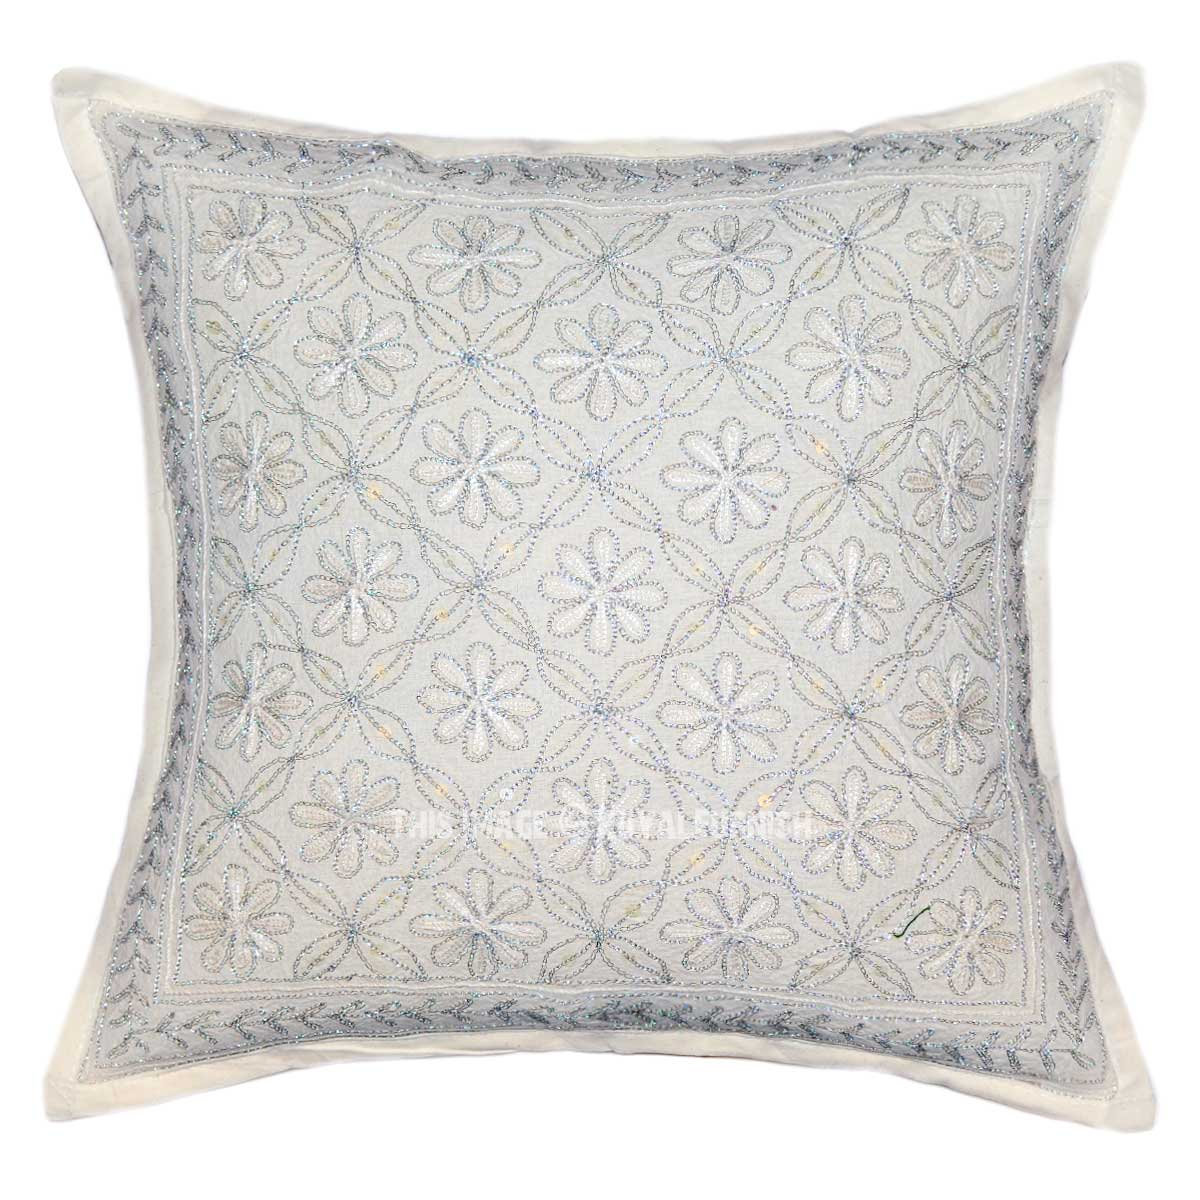 Embroidered Throw Pillow Covers : 16X16 White Hand Embroidered Unique Square Throw Pillow Cover - RoyalFurnish.com